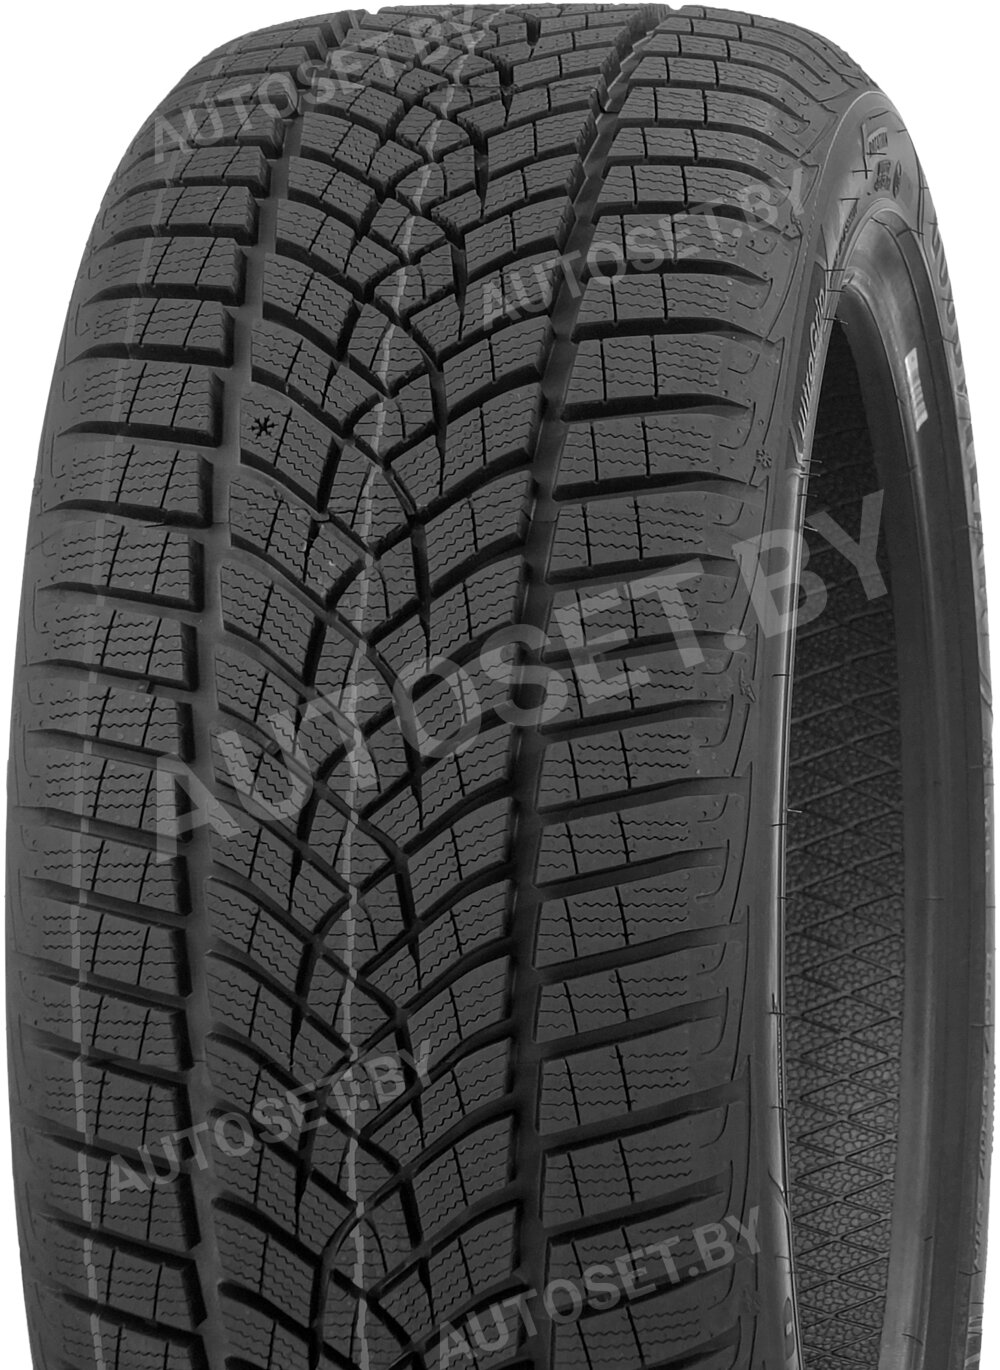 Зимняя шина GOODYEAR UltraGrip Performance+ – вид 2